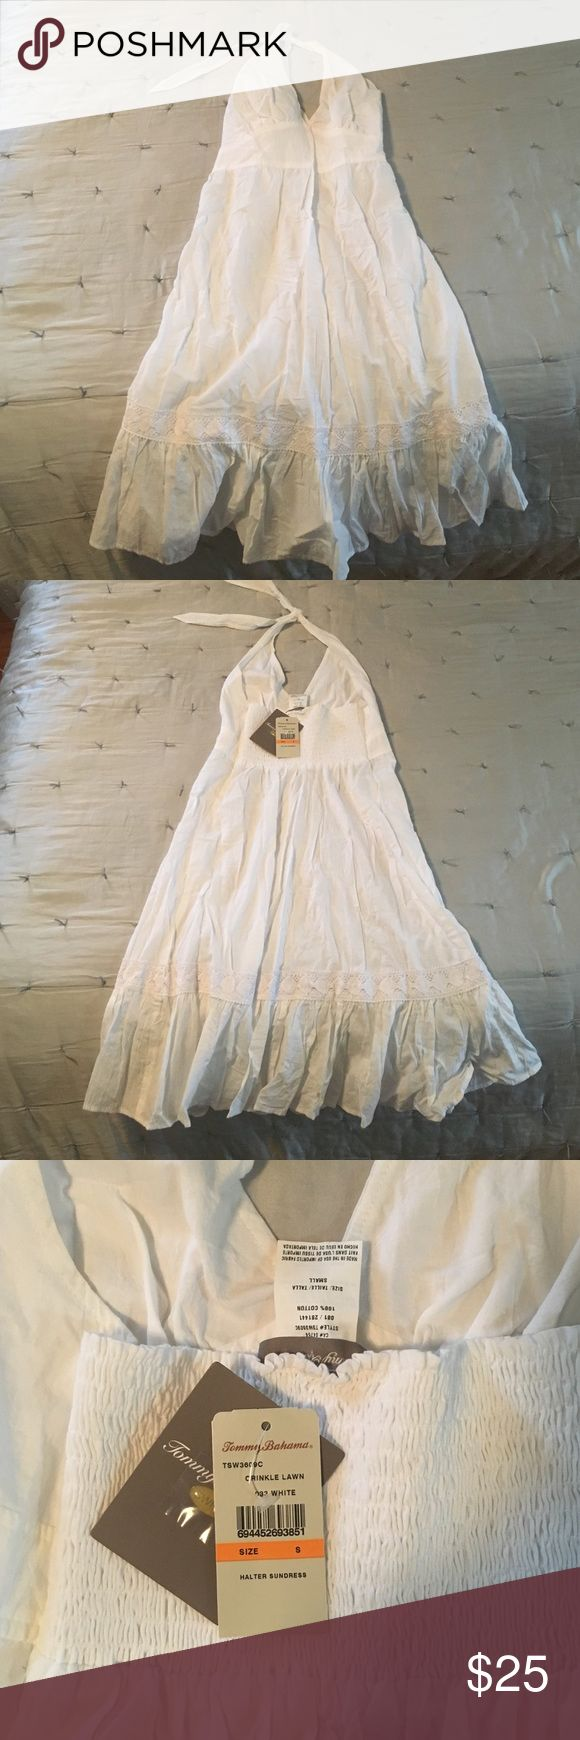 NWT Tommy Bahama white halter sundress, size S. NWT Tommy Bahama white halter sundress, size small. Tommy Bahama Dresses Mini